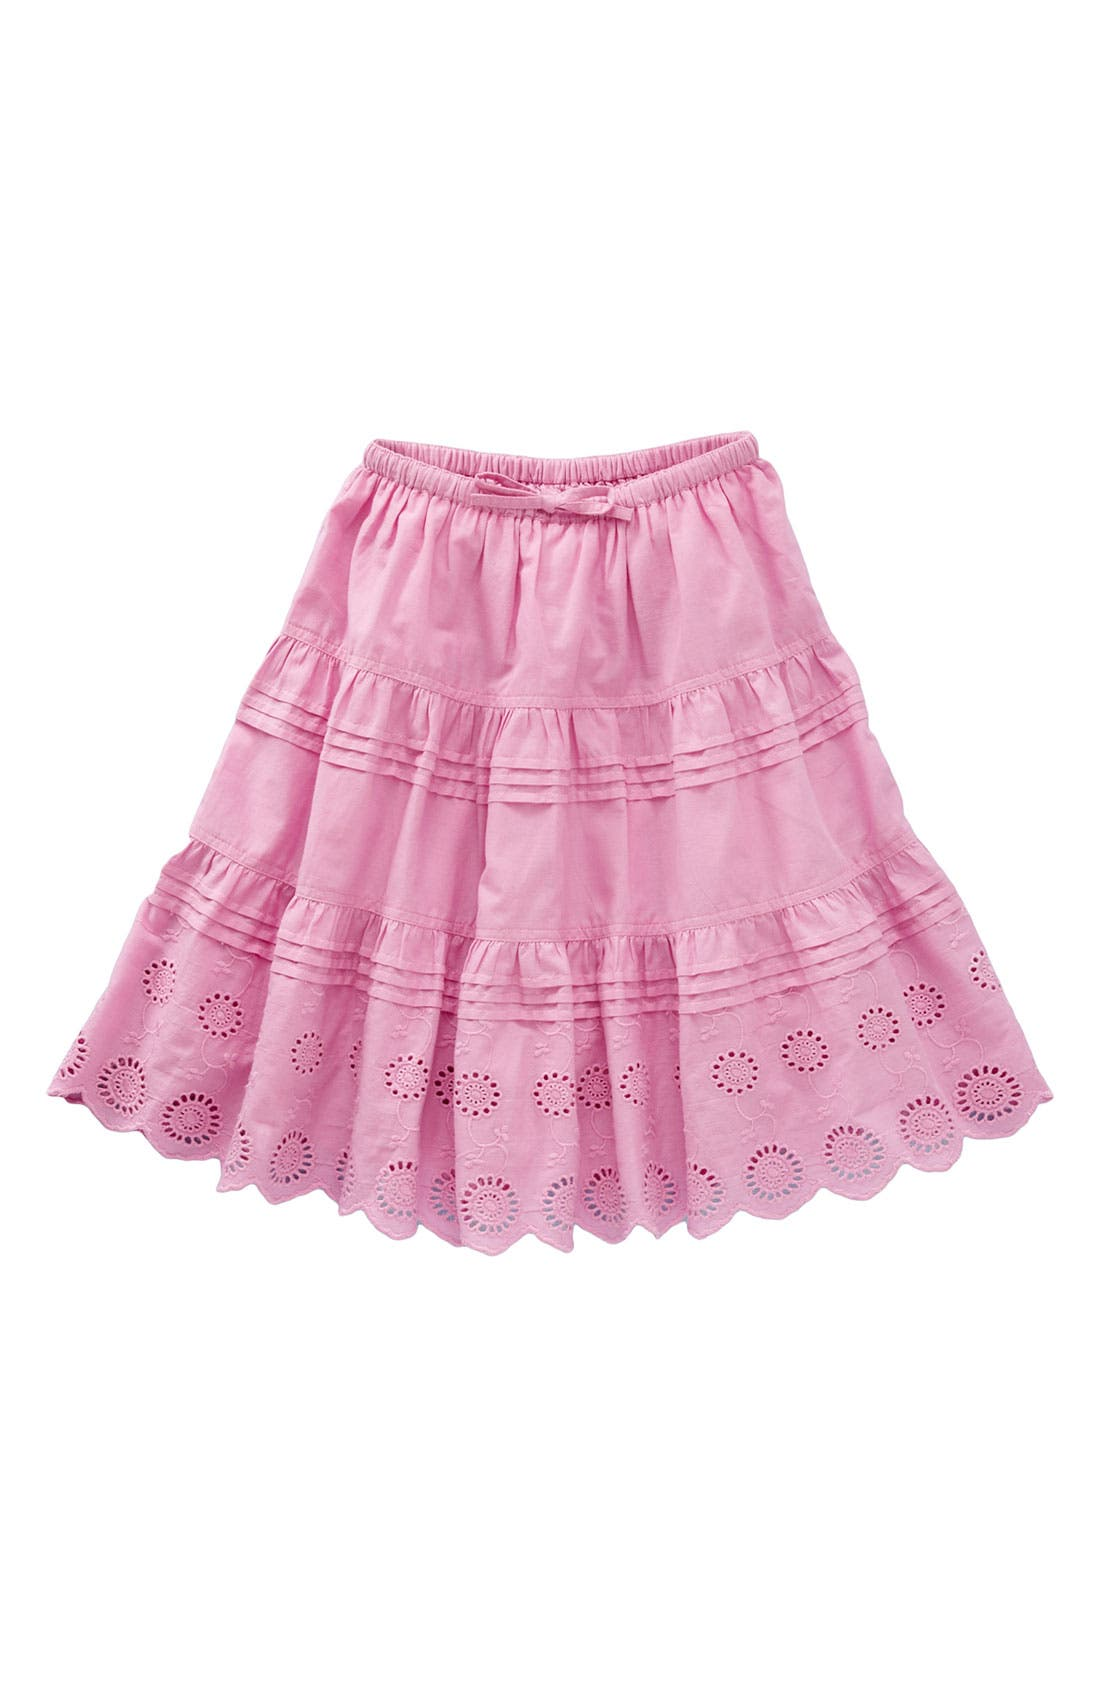 Main Image - Mini Boden 'Broiderie Twirly' Skirt (Little Girl & Big Girl)